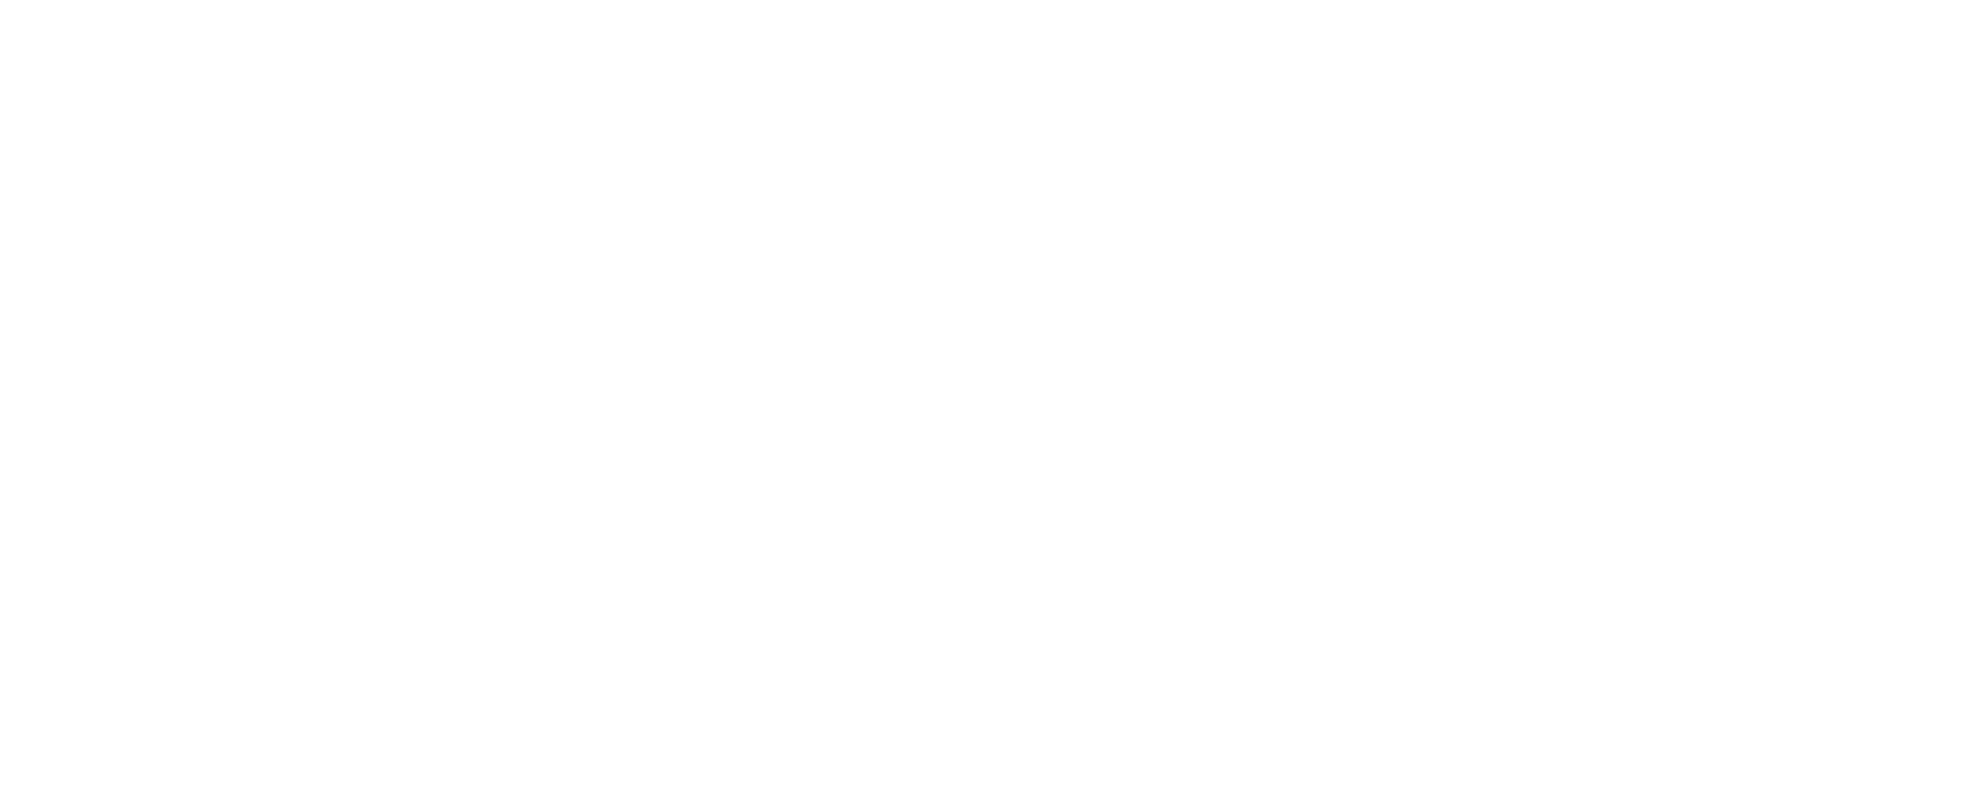 Logo GlowwDesign